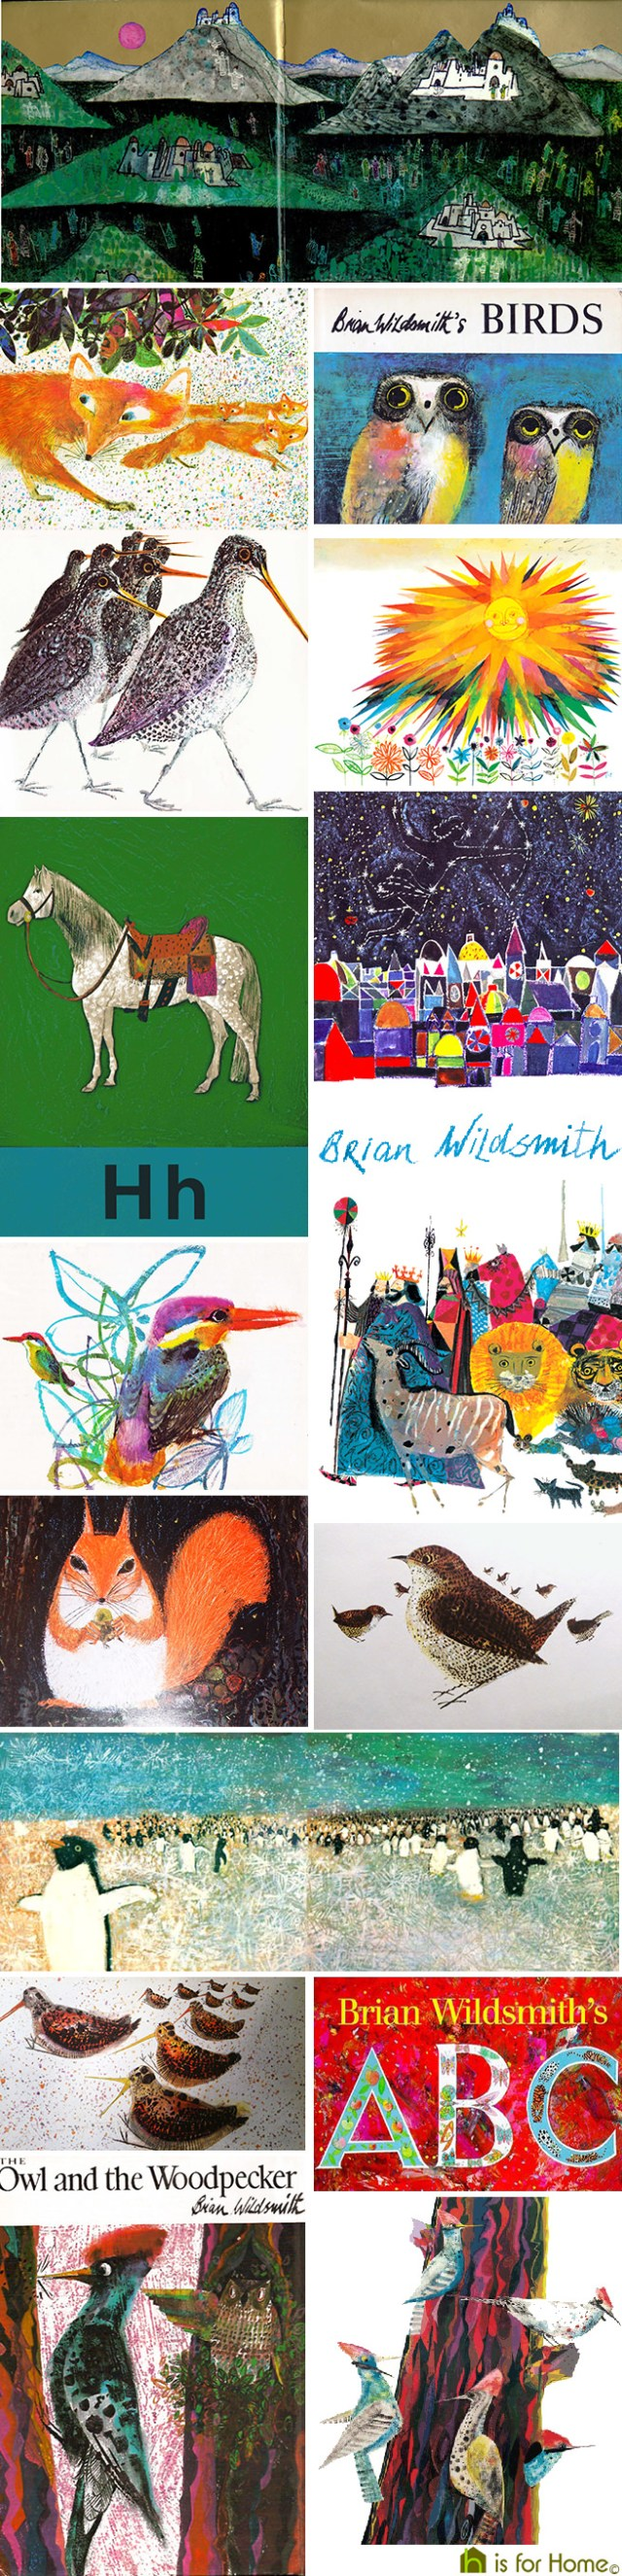 Mosaic of Brian Wildsmith illustrations | H is for Home